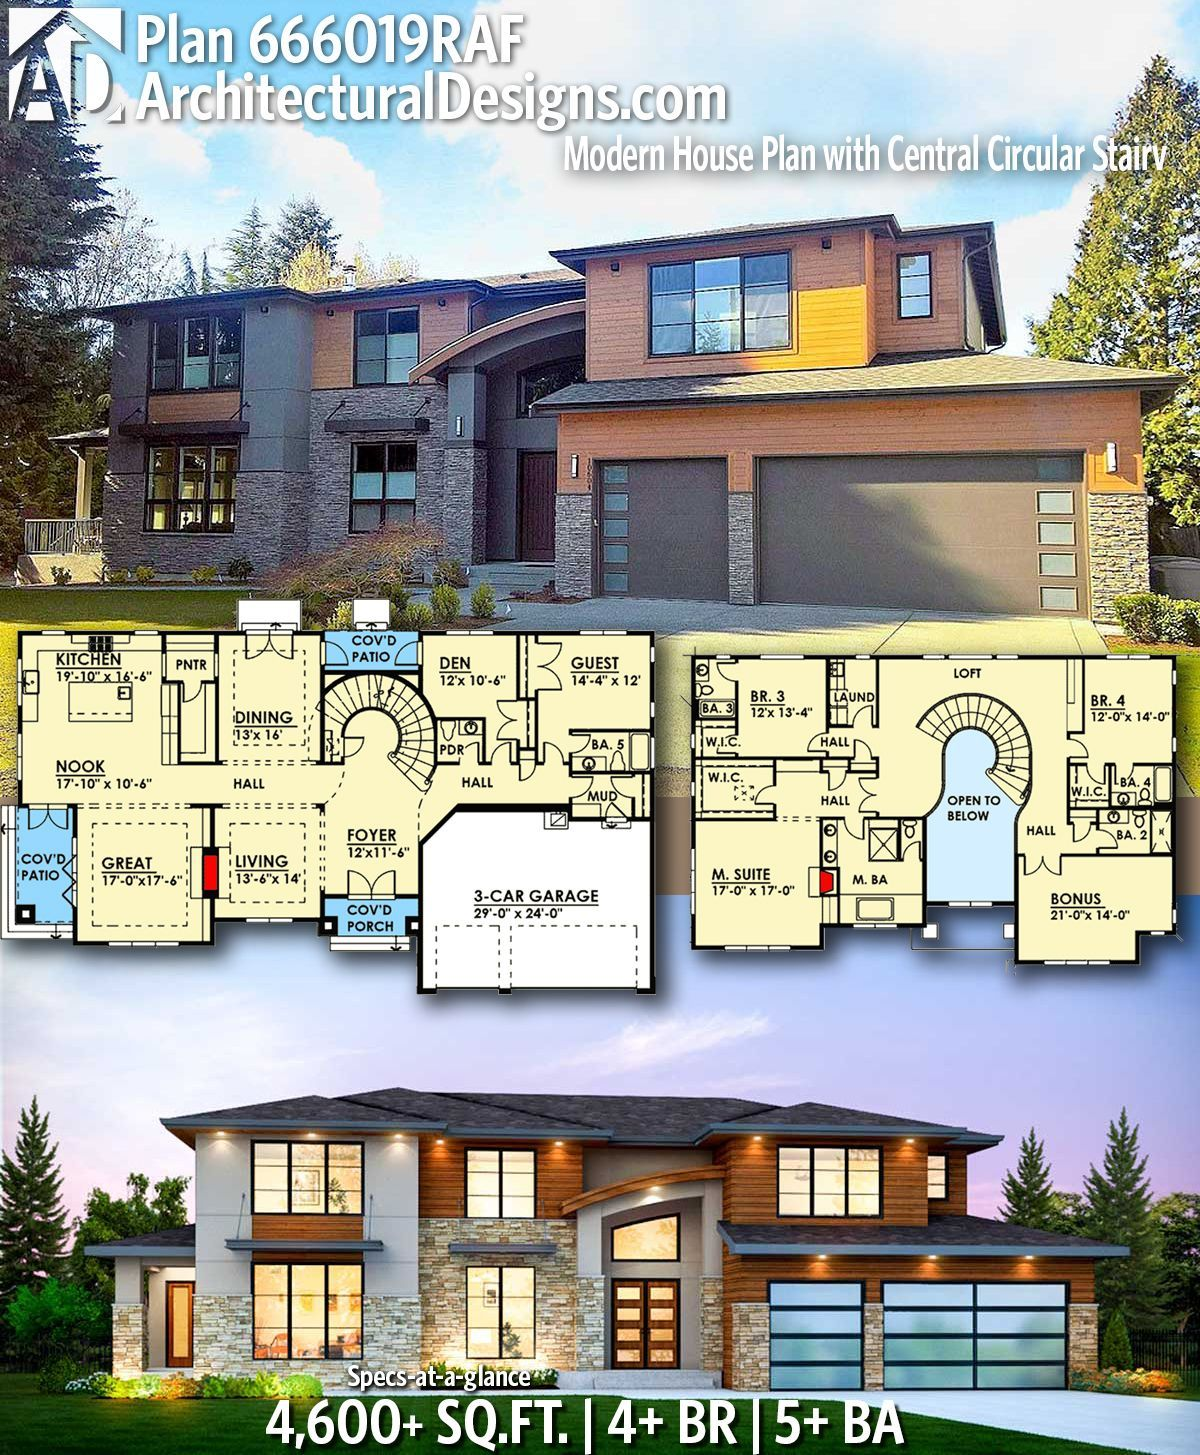 Architectural Designs Modern House Plan 666019RAF gives